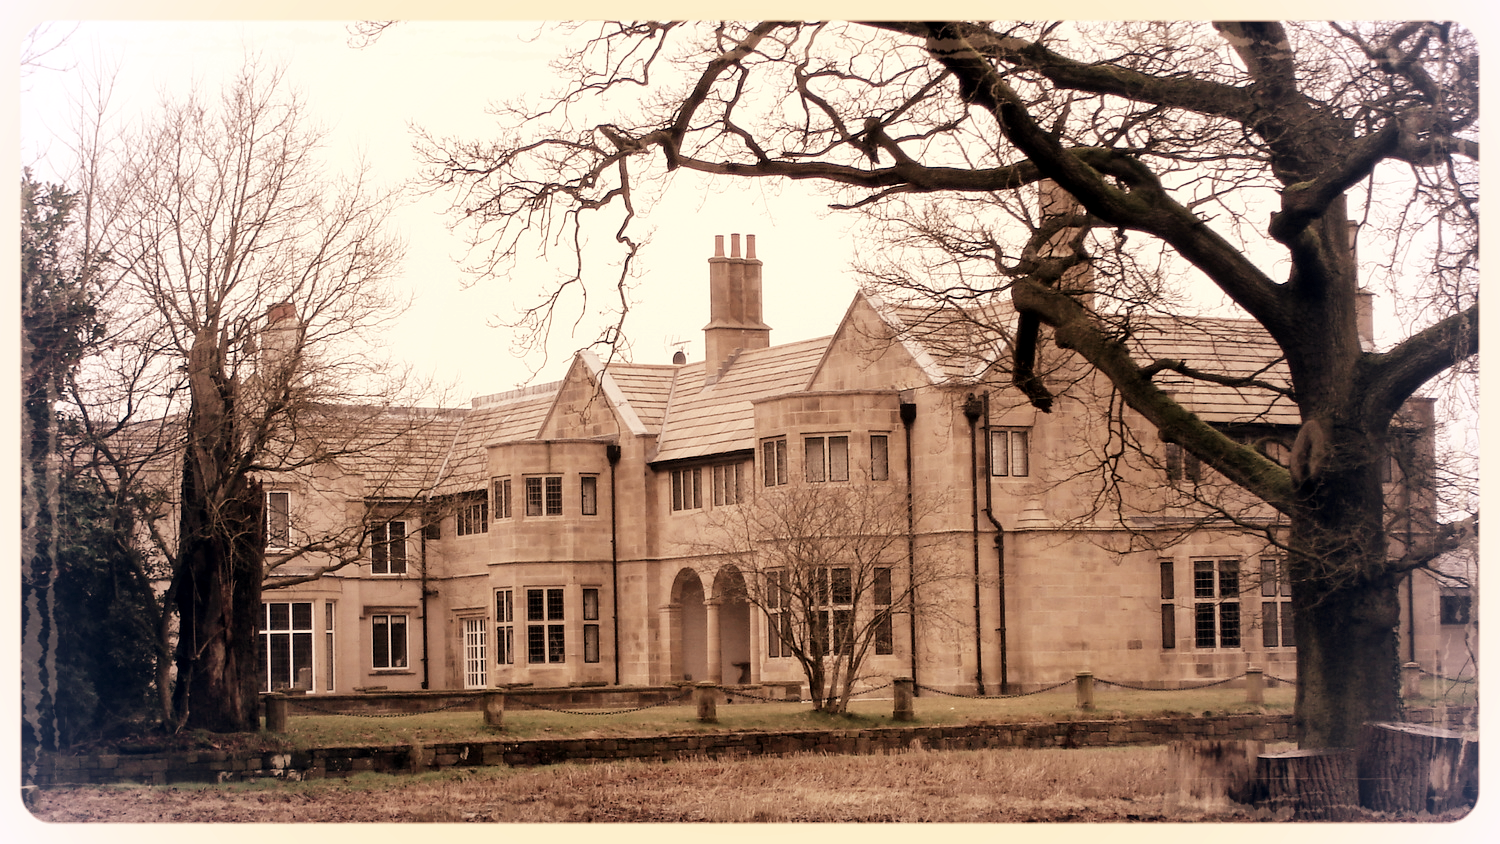 Blythe Hall, Lathom, Lancashire, UK. By Plucas58 (Own work) [CC BY-SA 3.0 ( http://creativecommons.org/licenses/by-sa/3.0 )], via Wikimedia Commons]. Image changed to sepia tone with border.